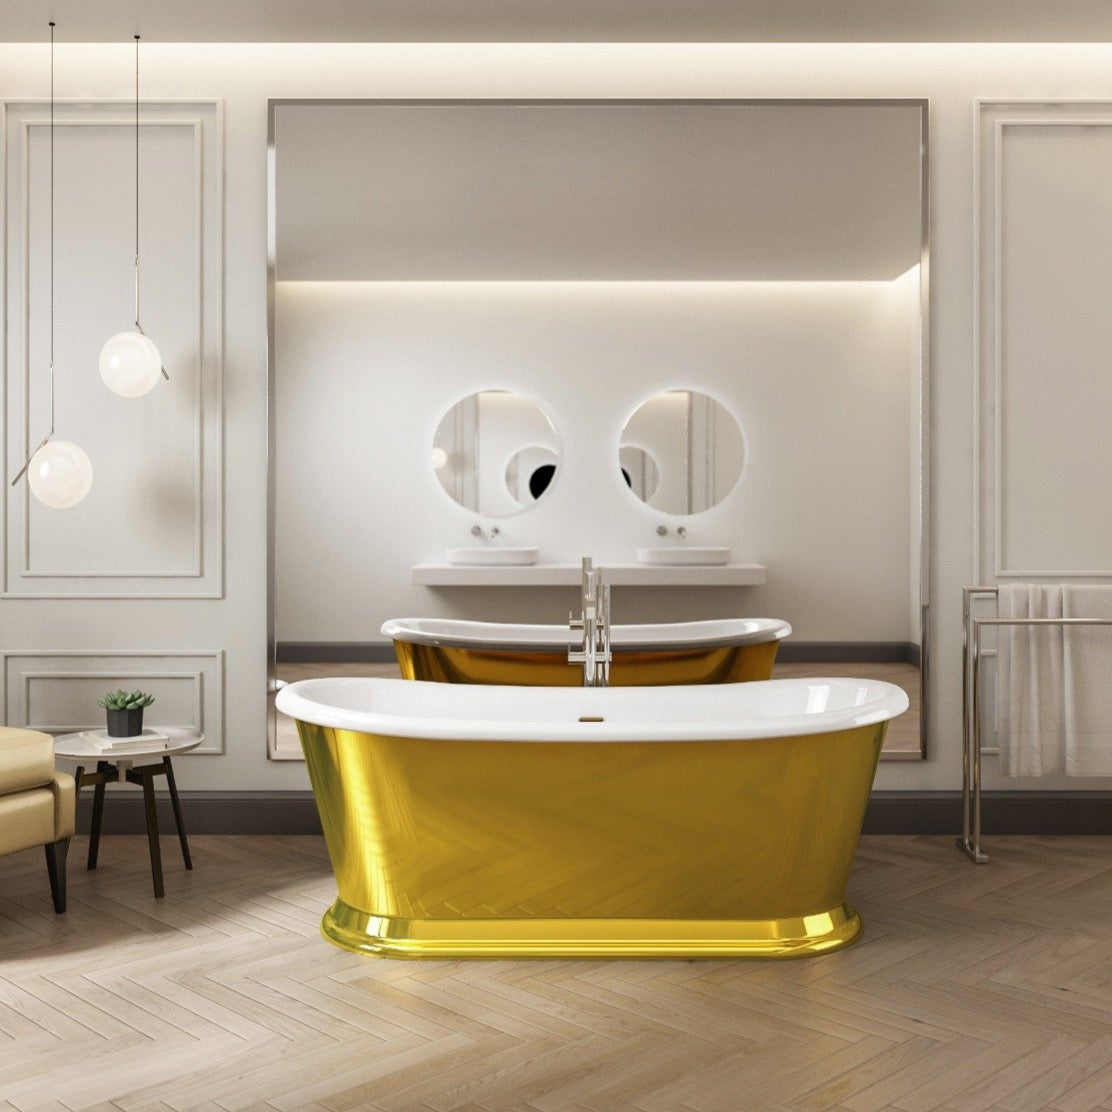 Charlotte Edwards Rosemary Gold 1700mm Freestanding Bath